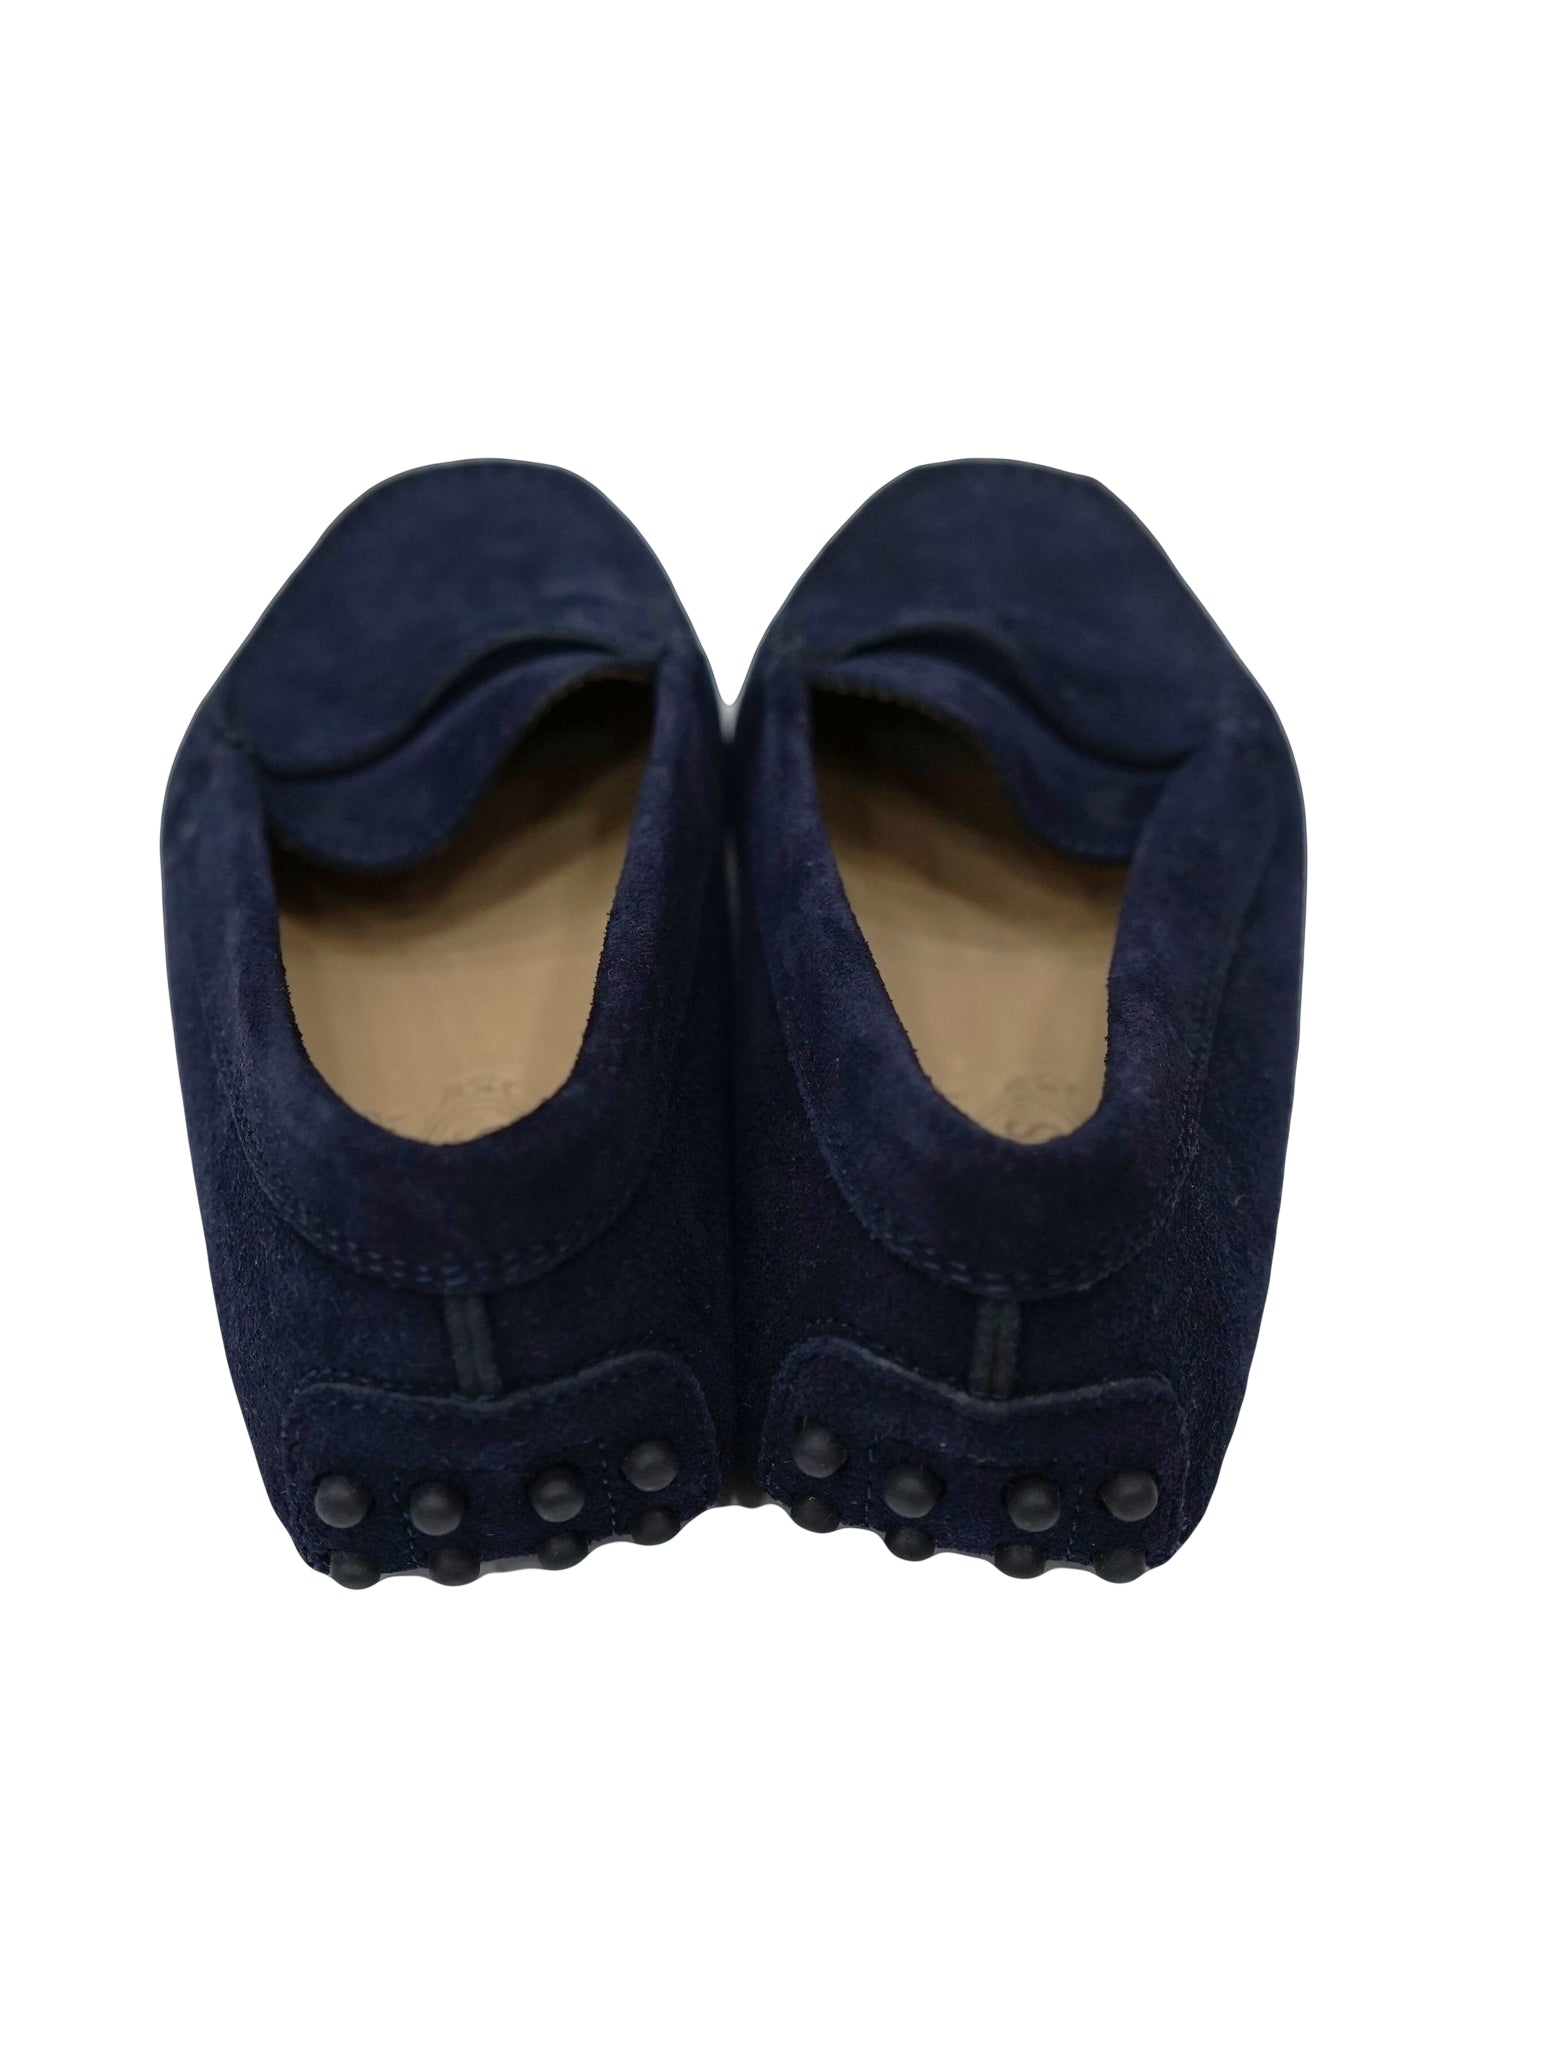 BOYS NAVY BLUE SUEDE LEATHER MOCCASIN